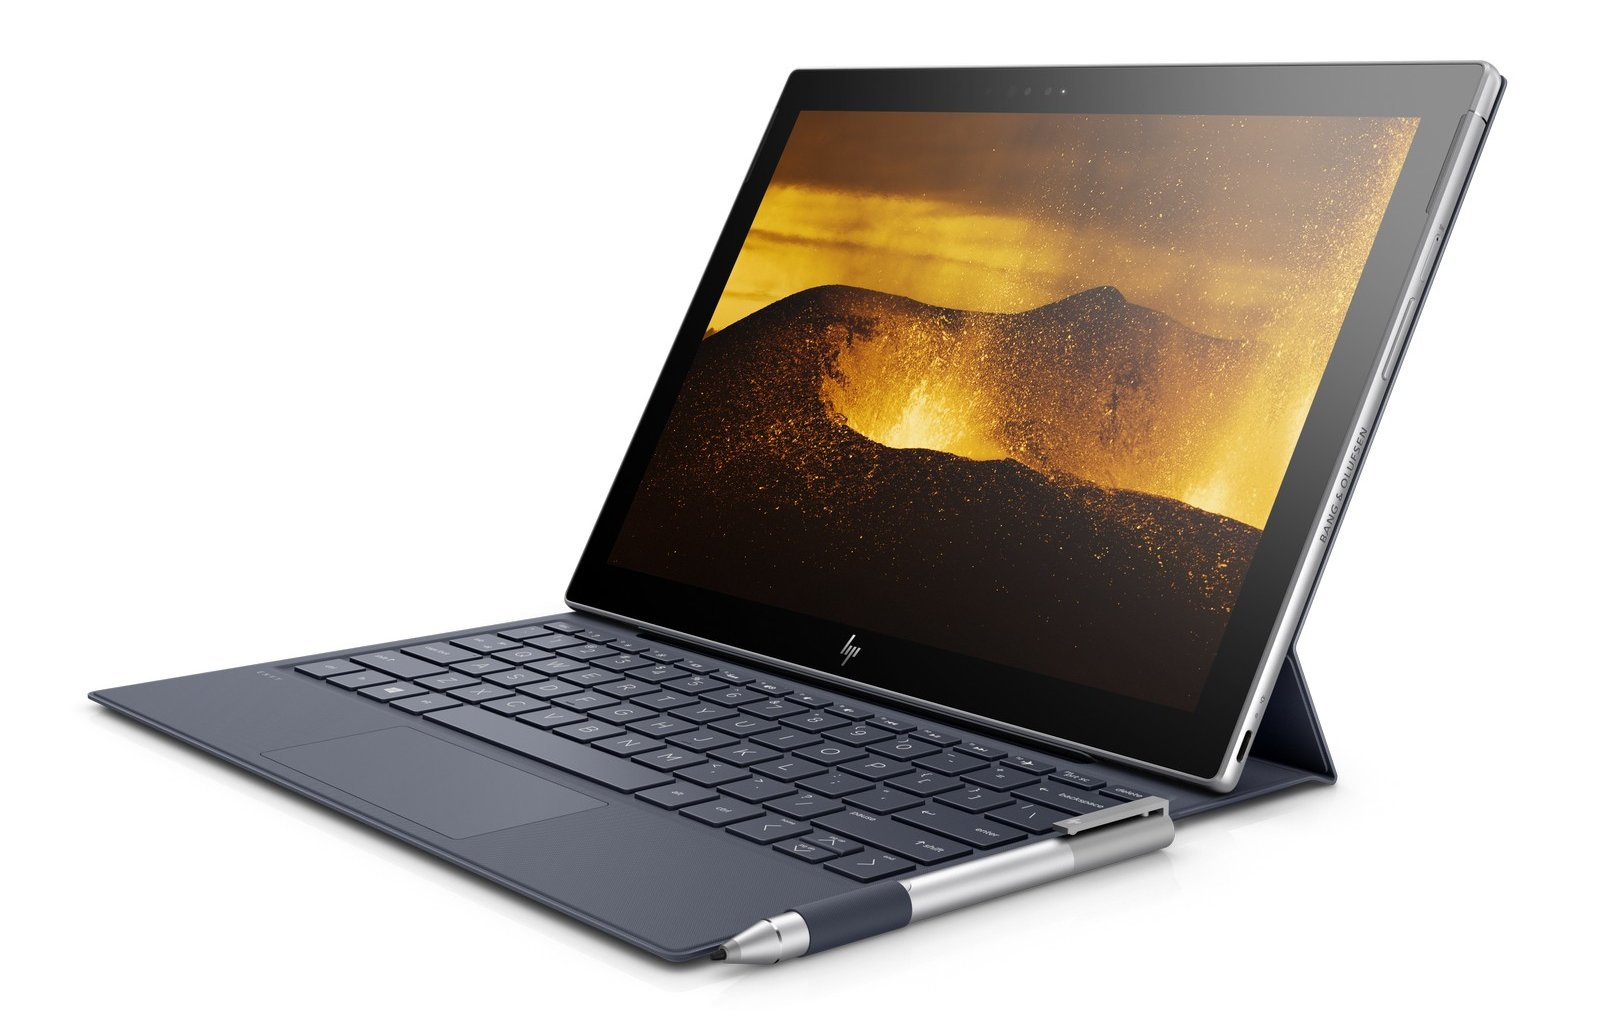 Kaby Lake G makes an appearance in the HP Spectre x360 15